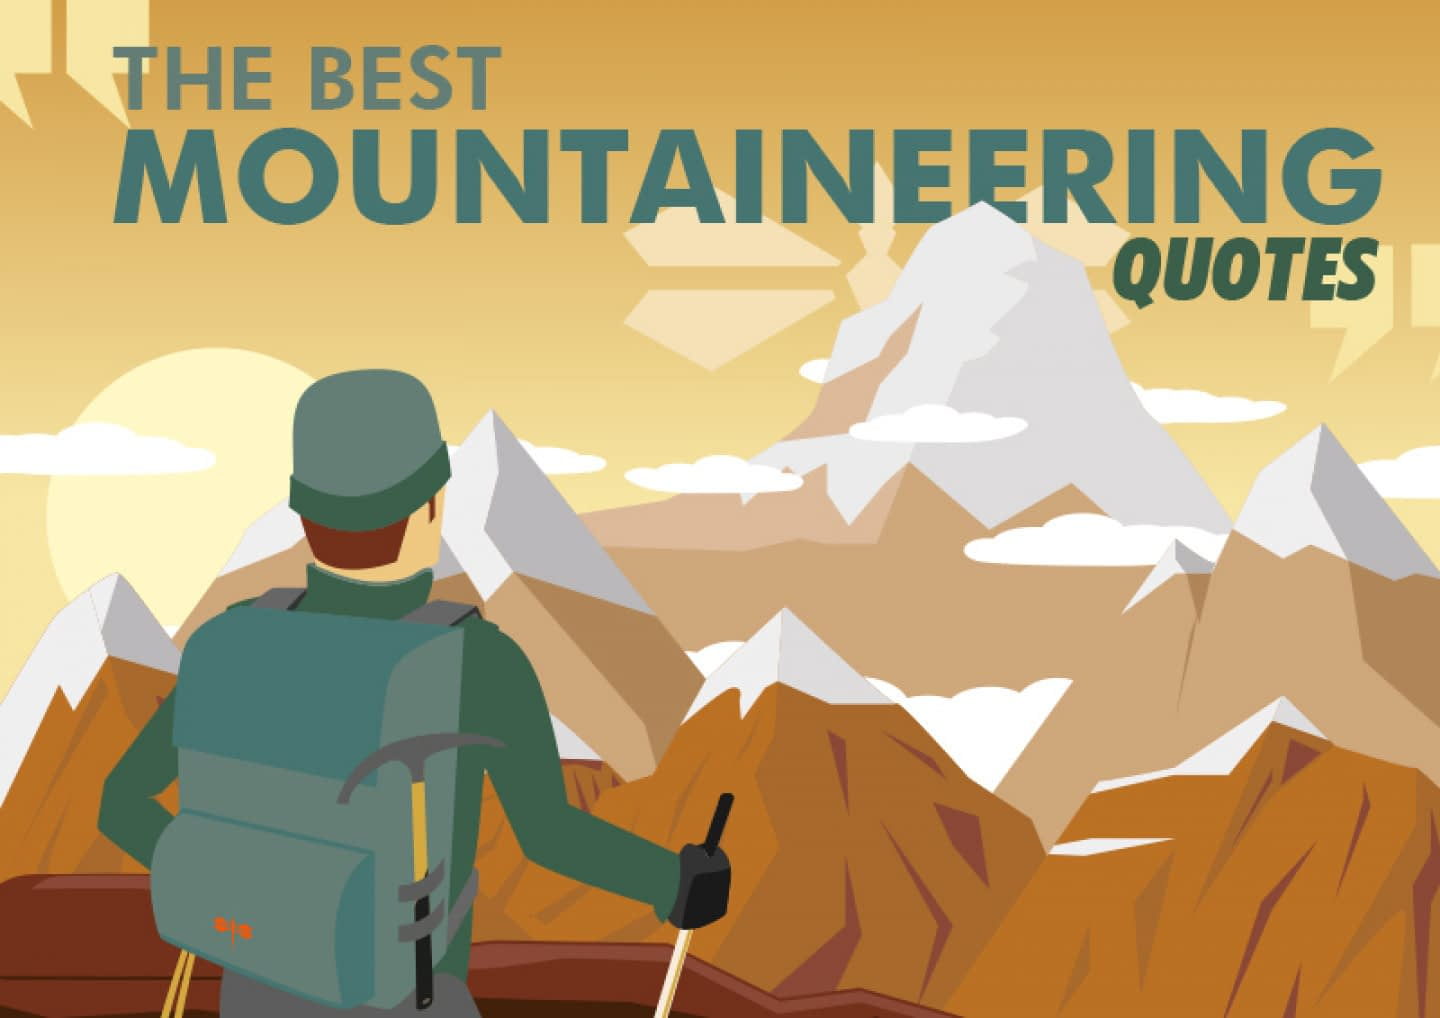 mountaineering quotes featured picture